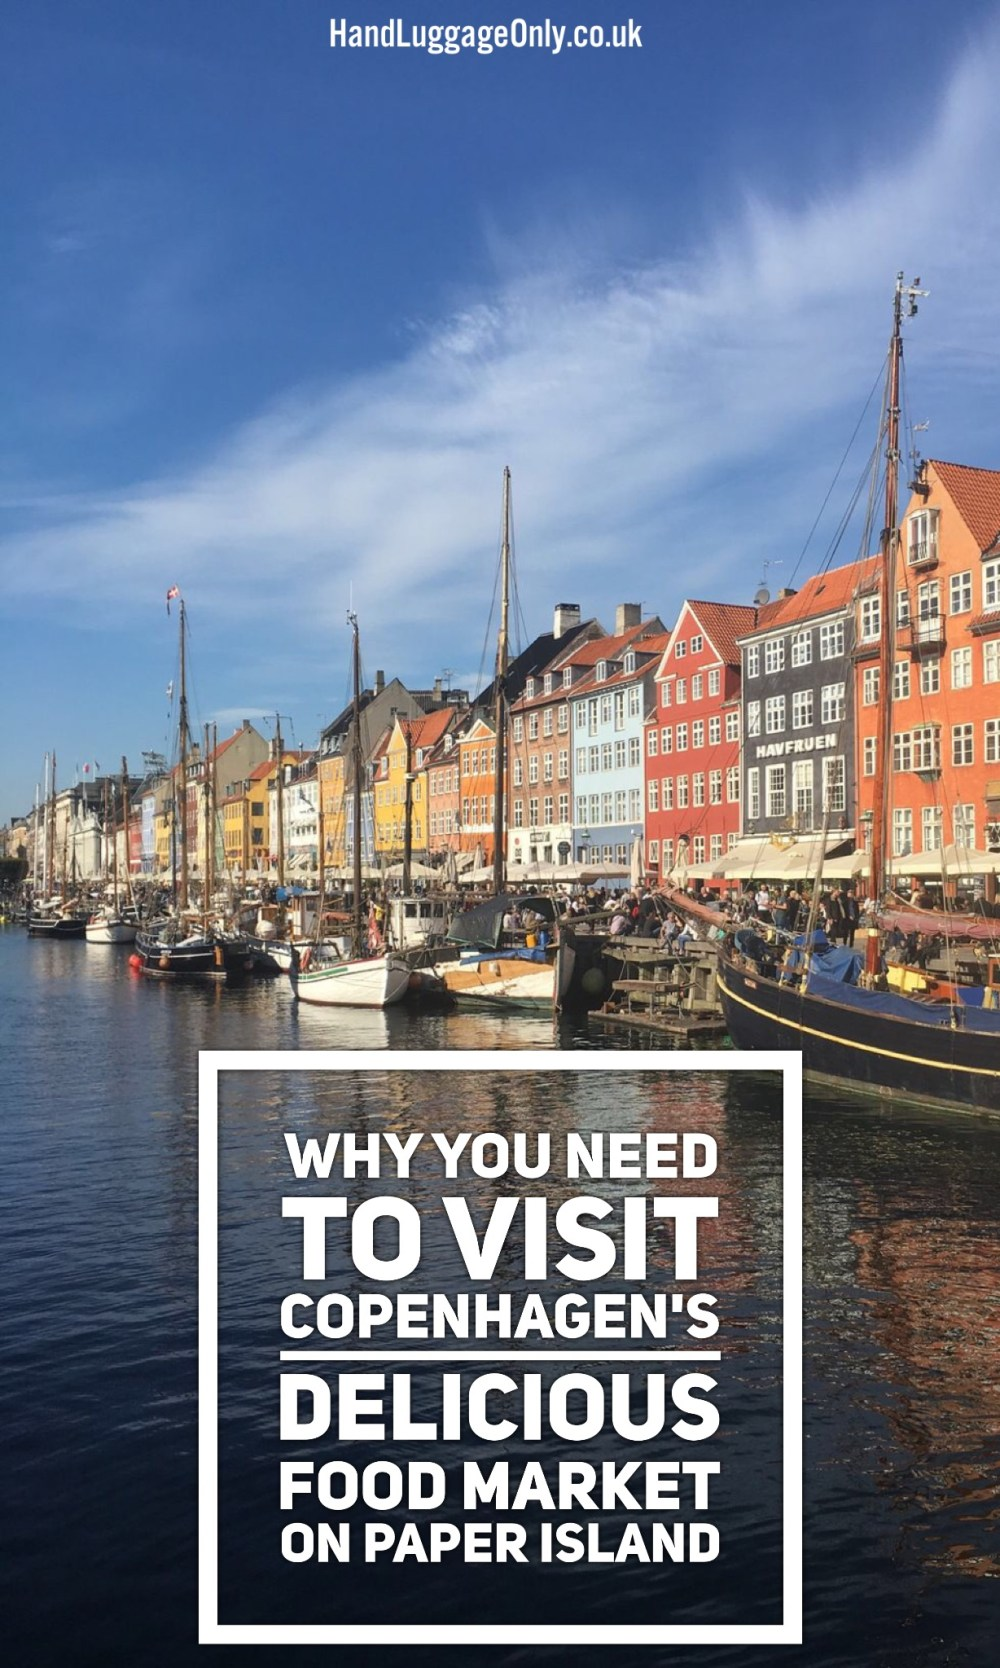 Why You Need To Enjoy Copenhagen's Delicious Food Market on Paper Island